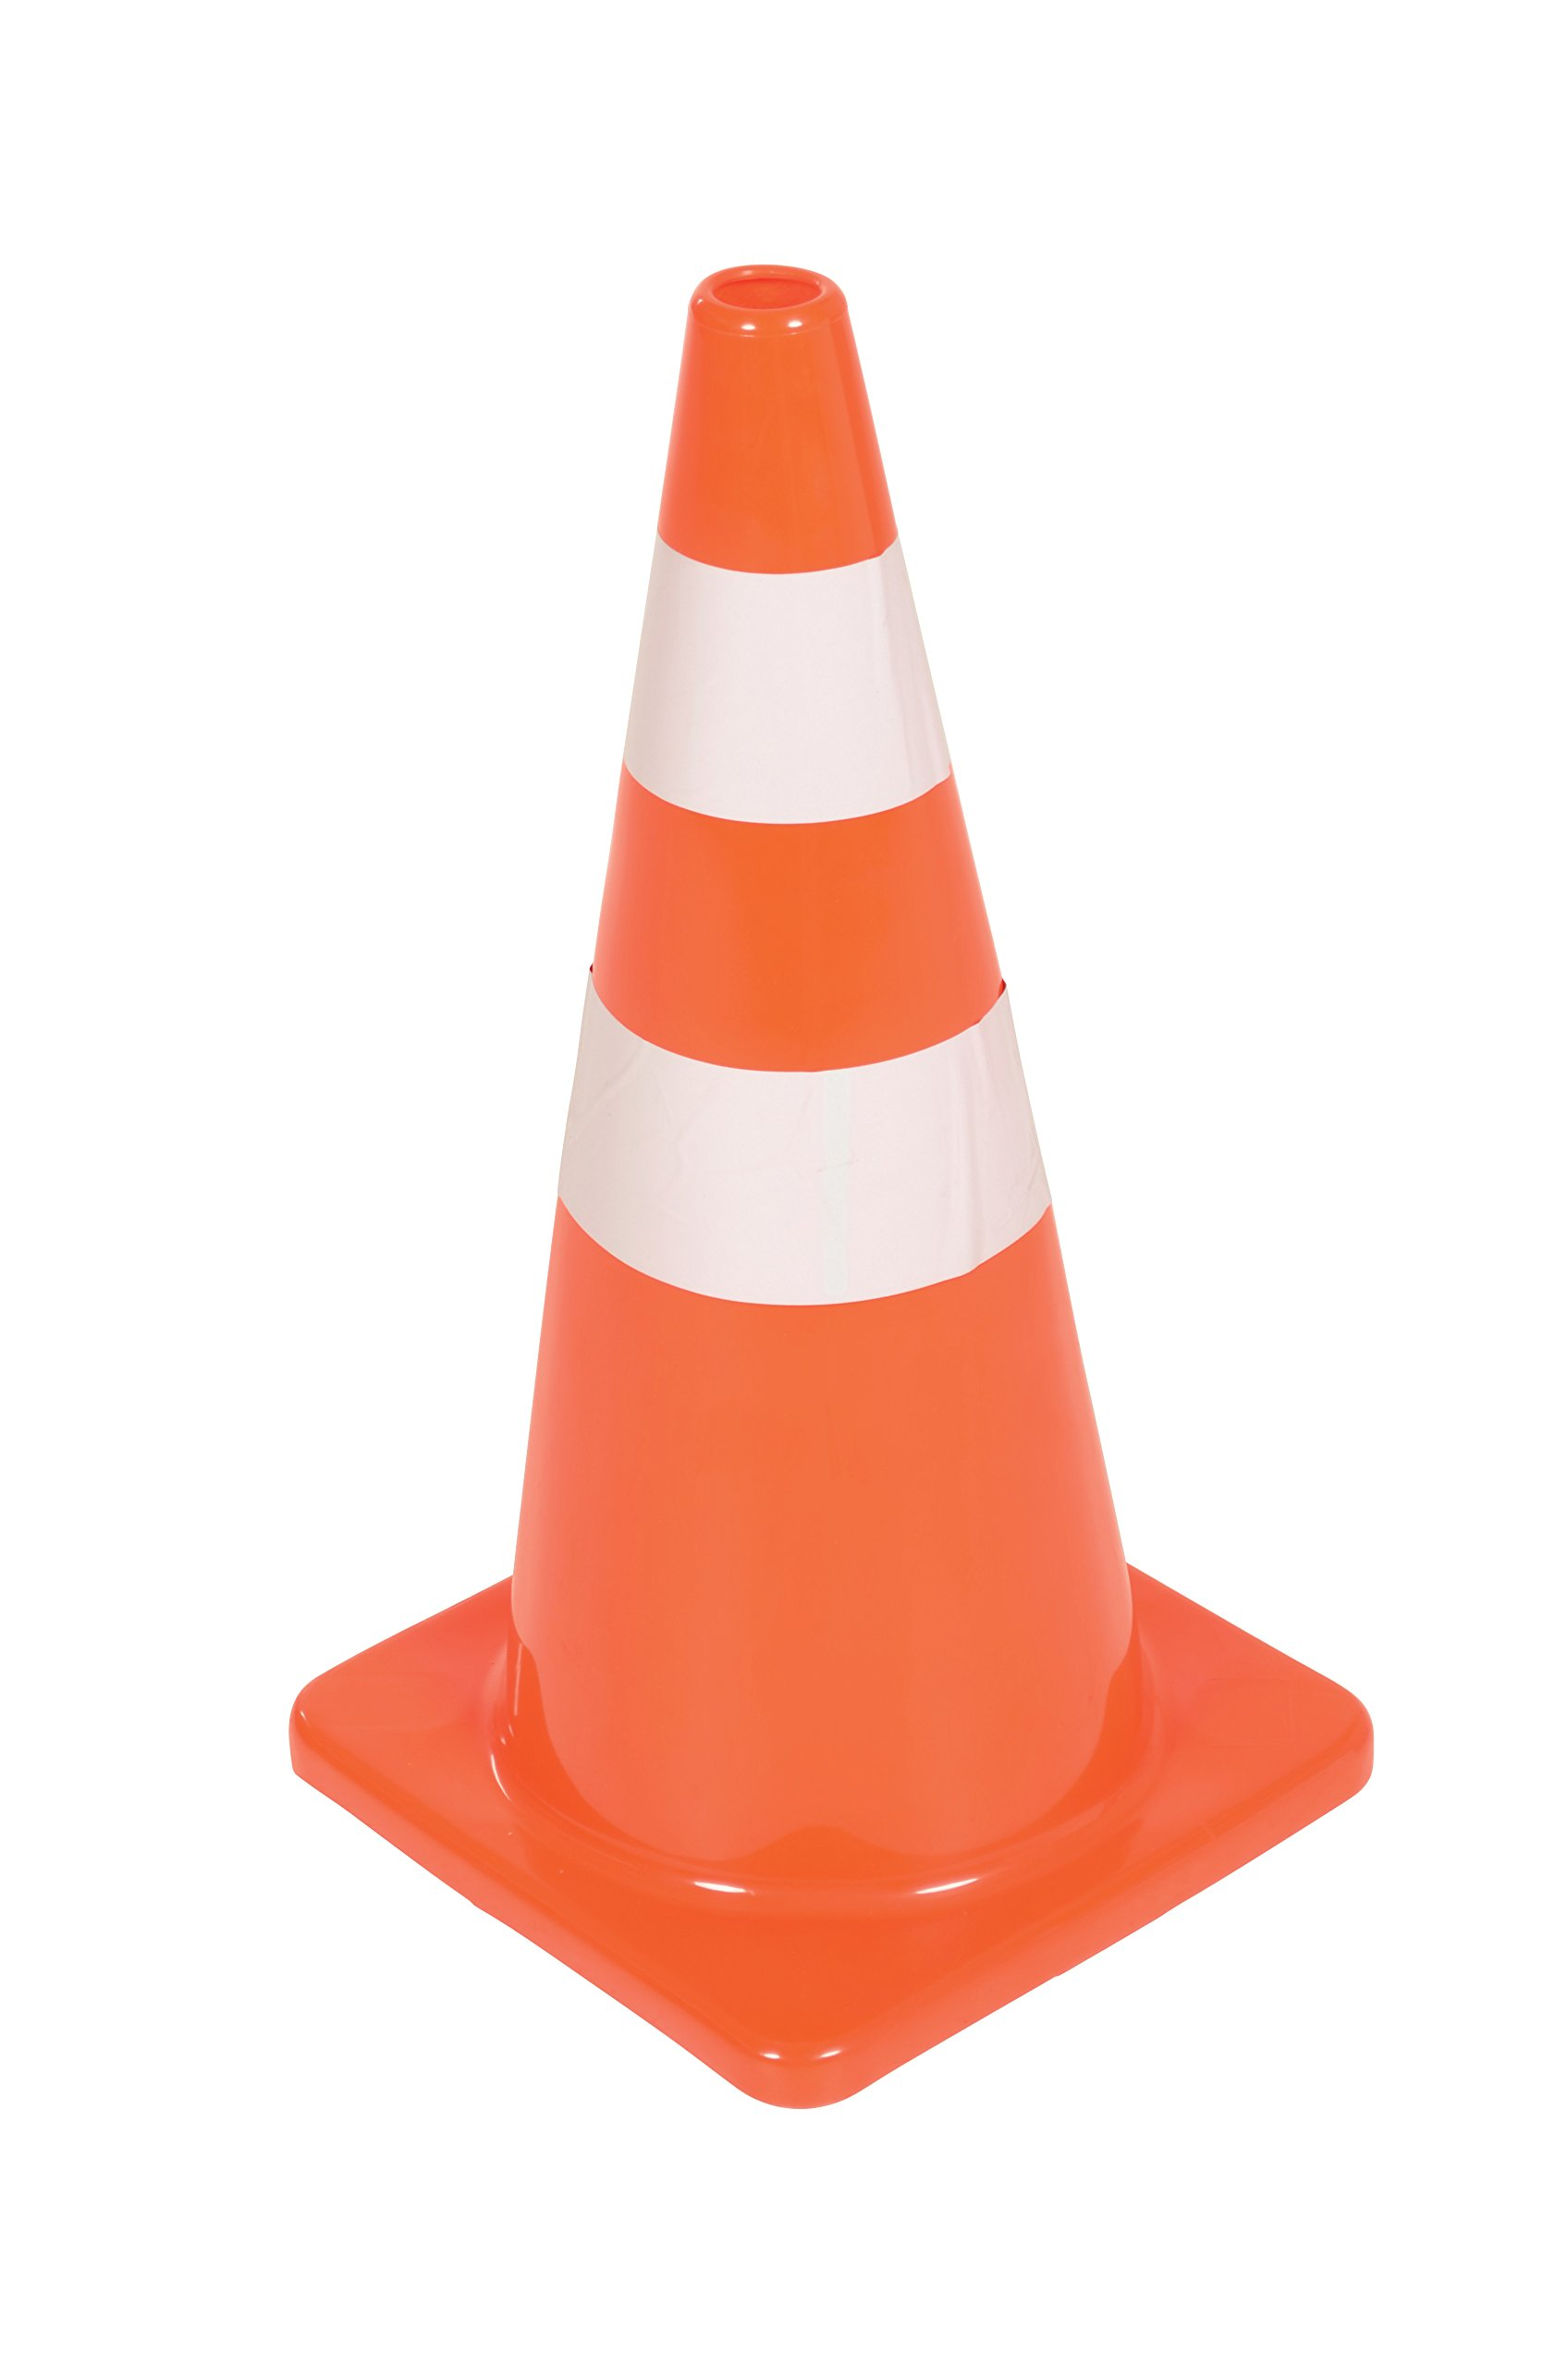 Vestil TC-28-SD-2R Polyvinyl Chloride Standard Duty Traffic Cone, 2 Reflector Stripes, 27-1/2'' x 14'' x 14'', Orange by Vestil